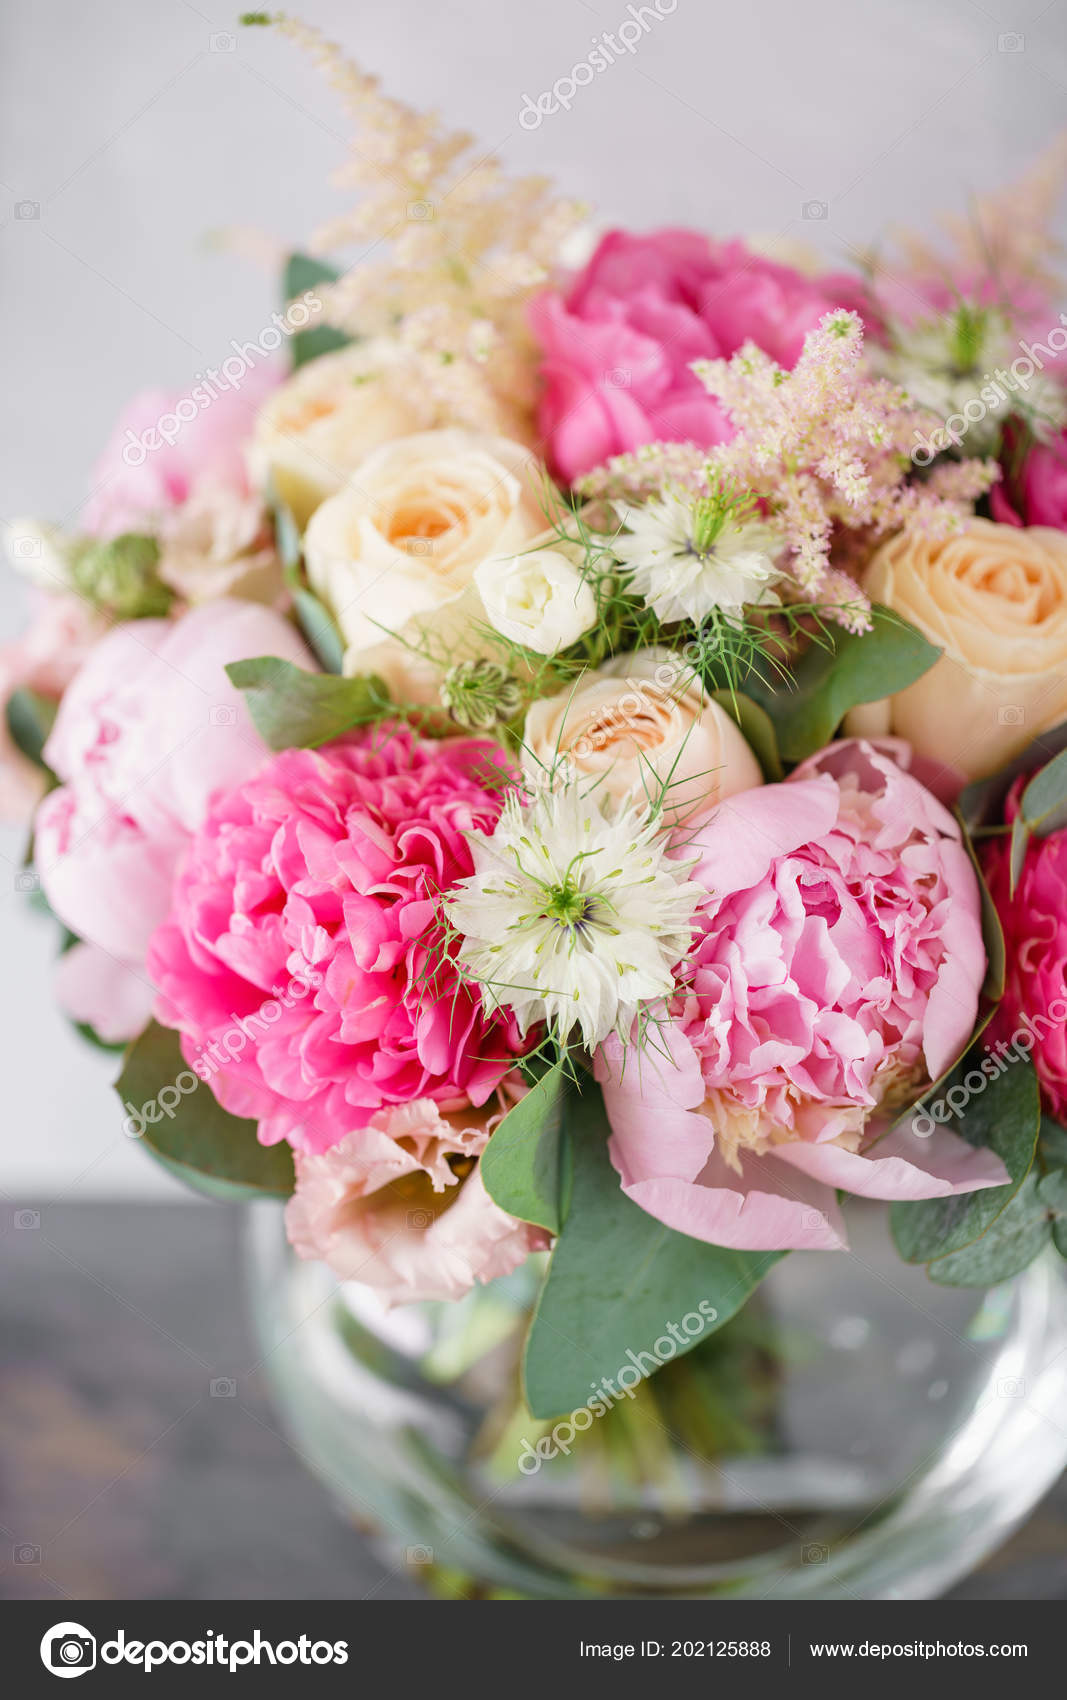 Beautiful summer bouquet flower arrangement with peonies color beautiful spring bouquet flower arrangement with hydrangea and peonies color light pink the concept of a flower shop a small family business izmirmasajfo